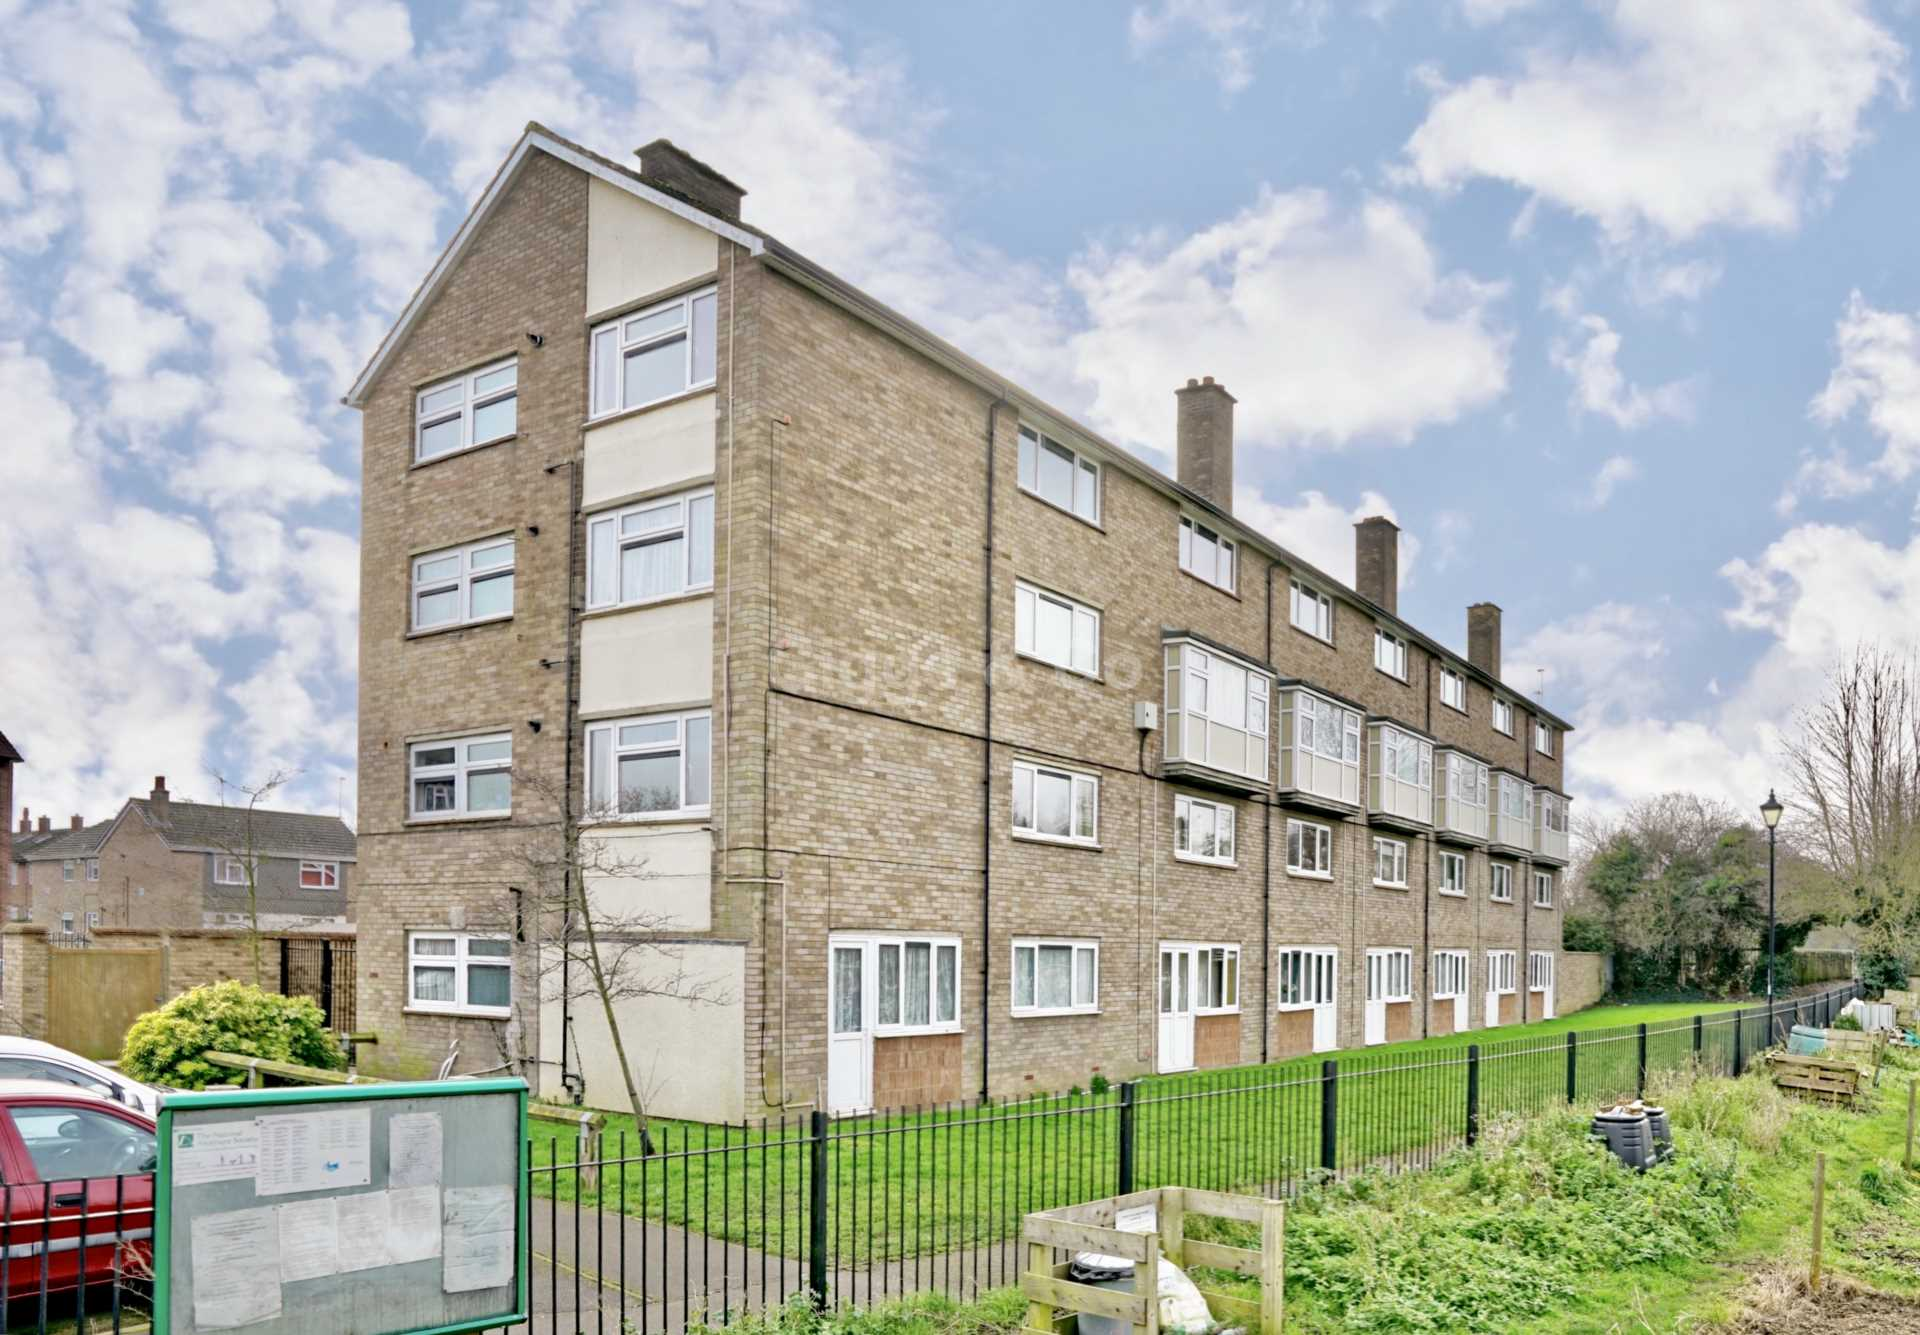 1 bed flat to rent in Brown Square, St Neots, PE19